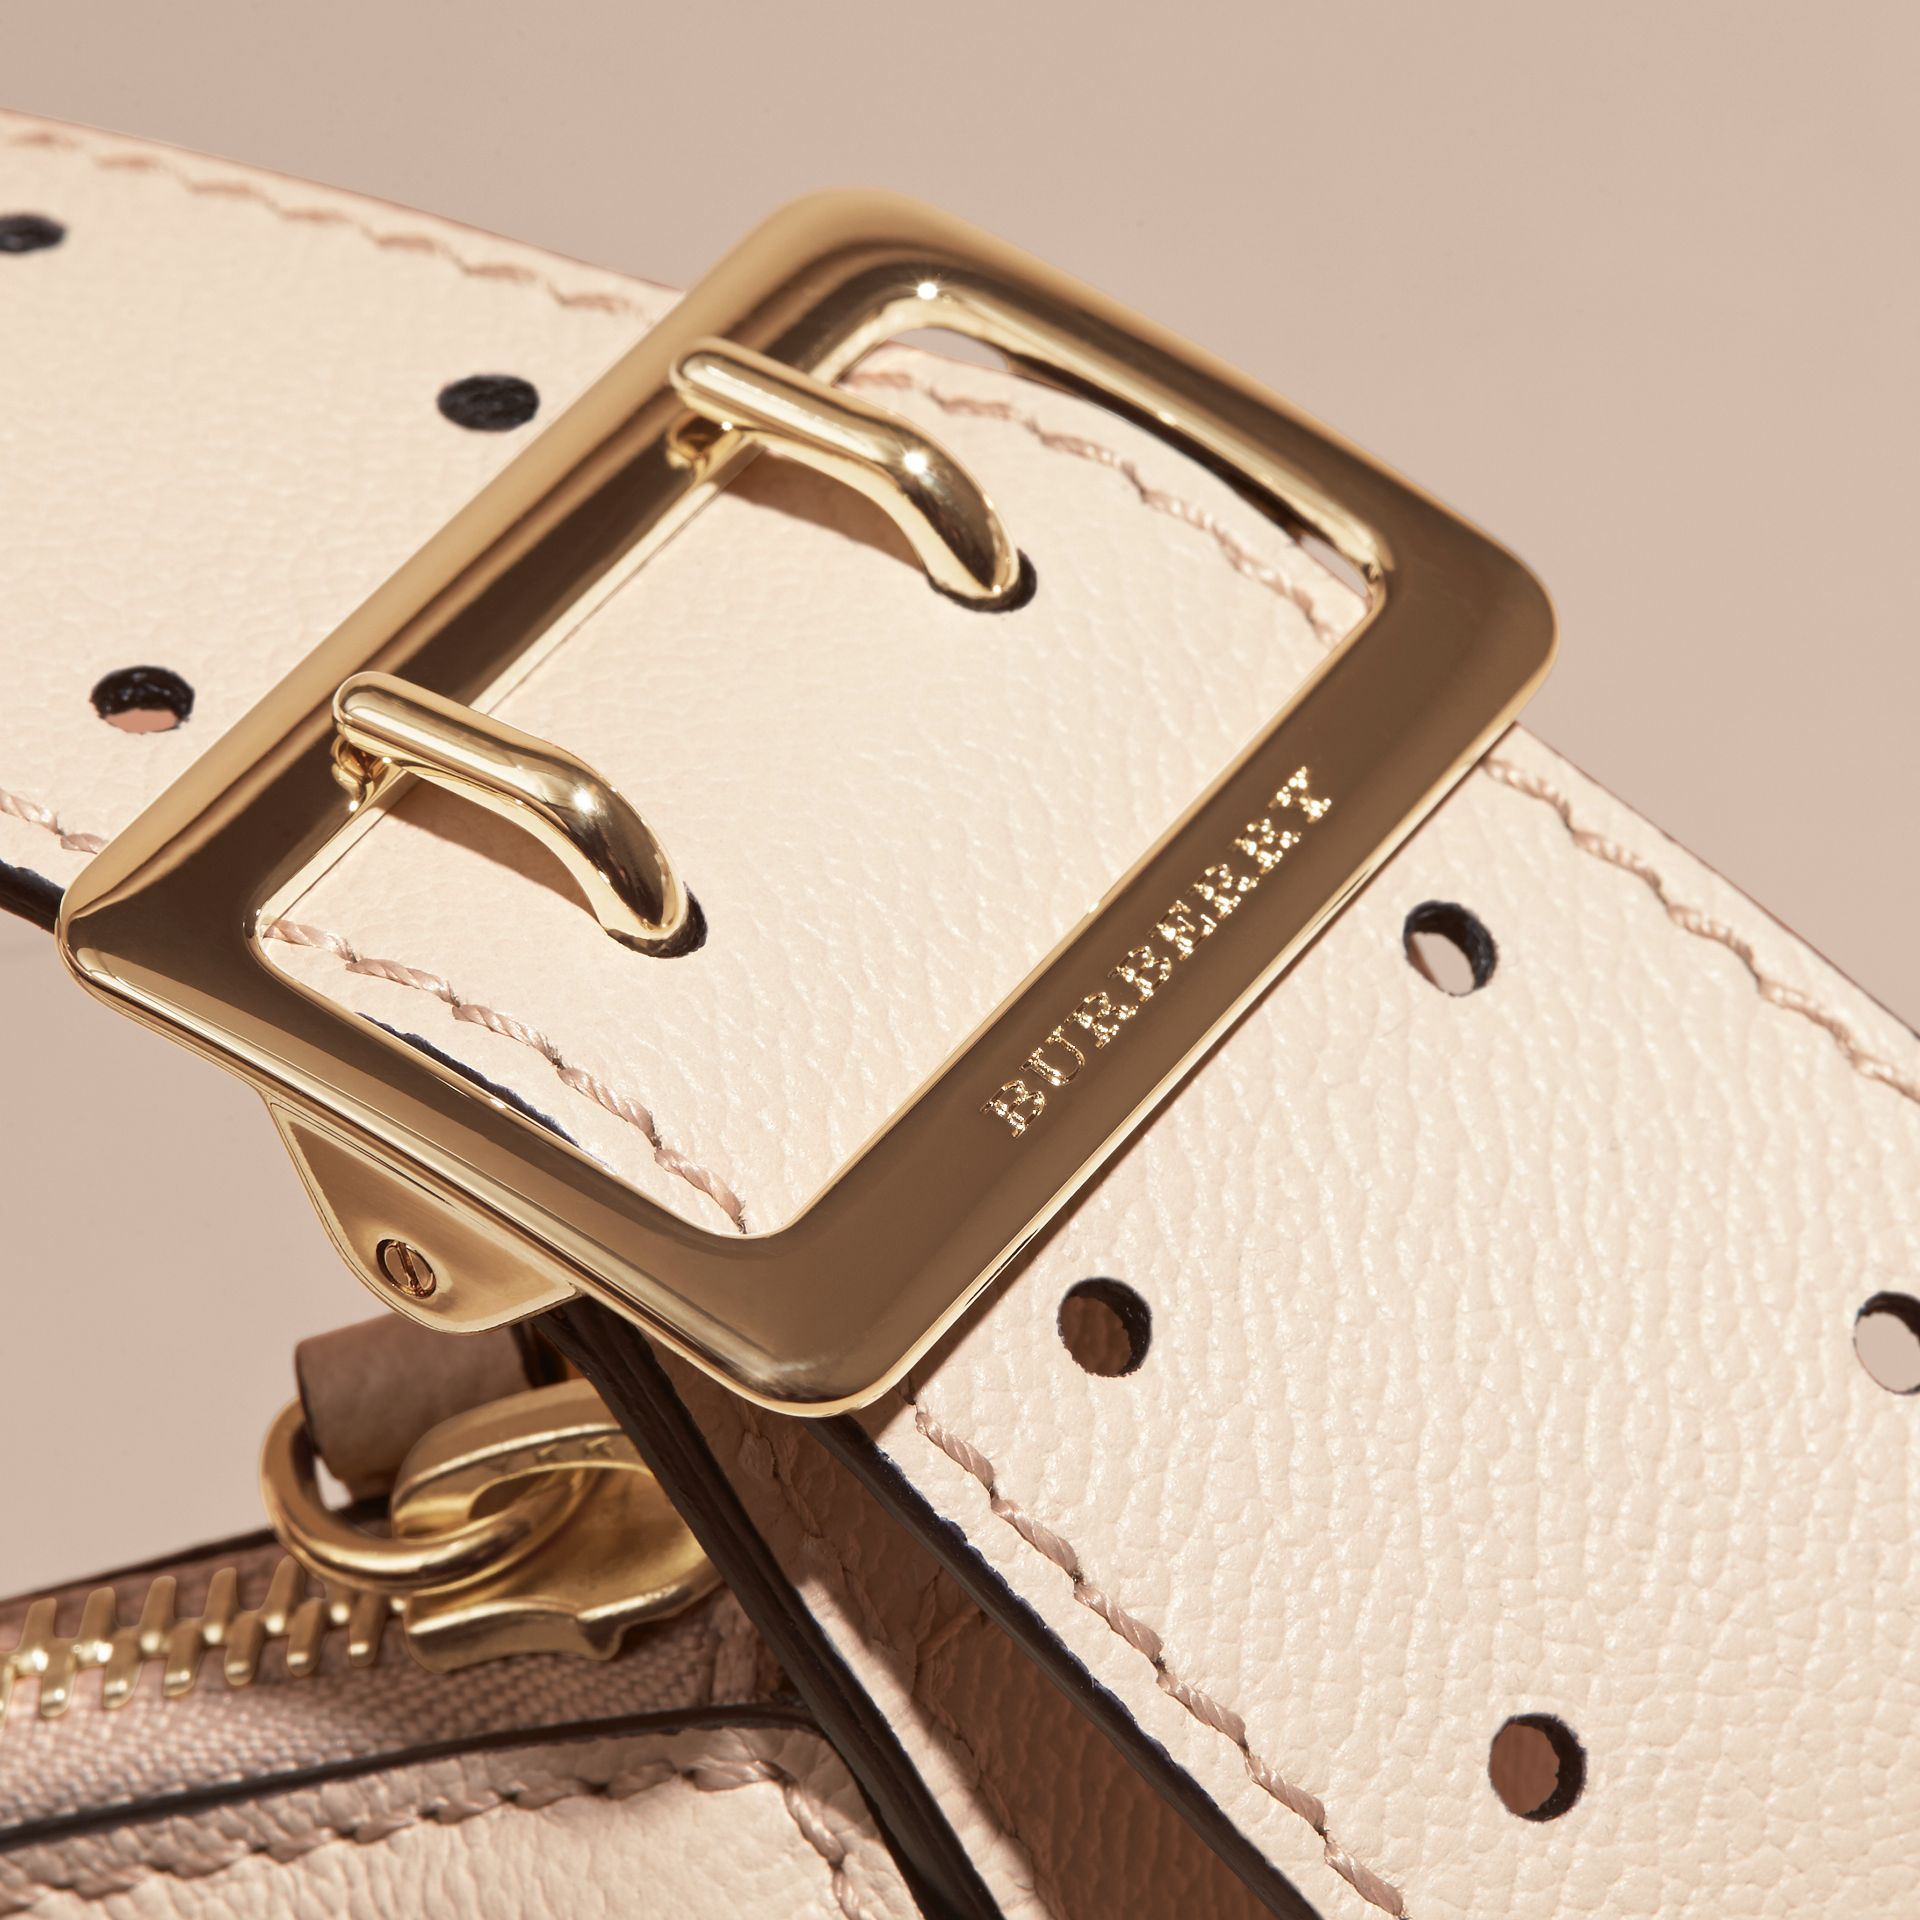 Buckle Detail Leather and House Check Crossbody Bag in Limestone - Women | Burberry - gallery image 2